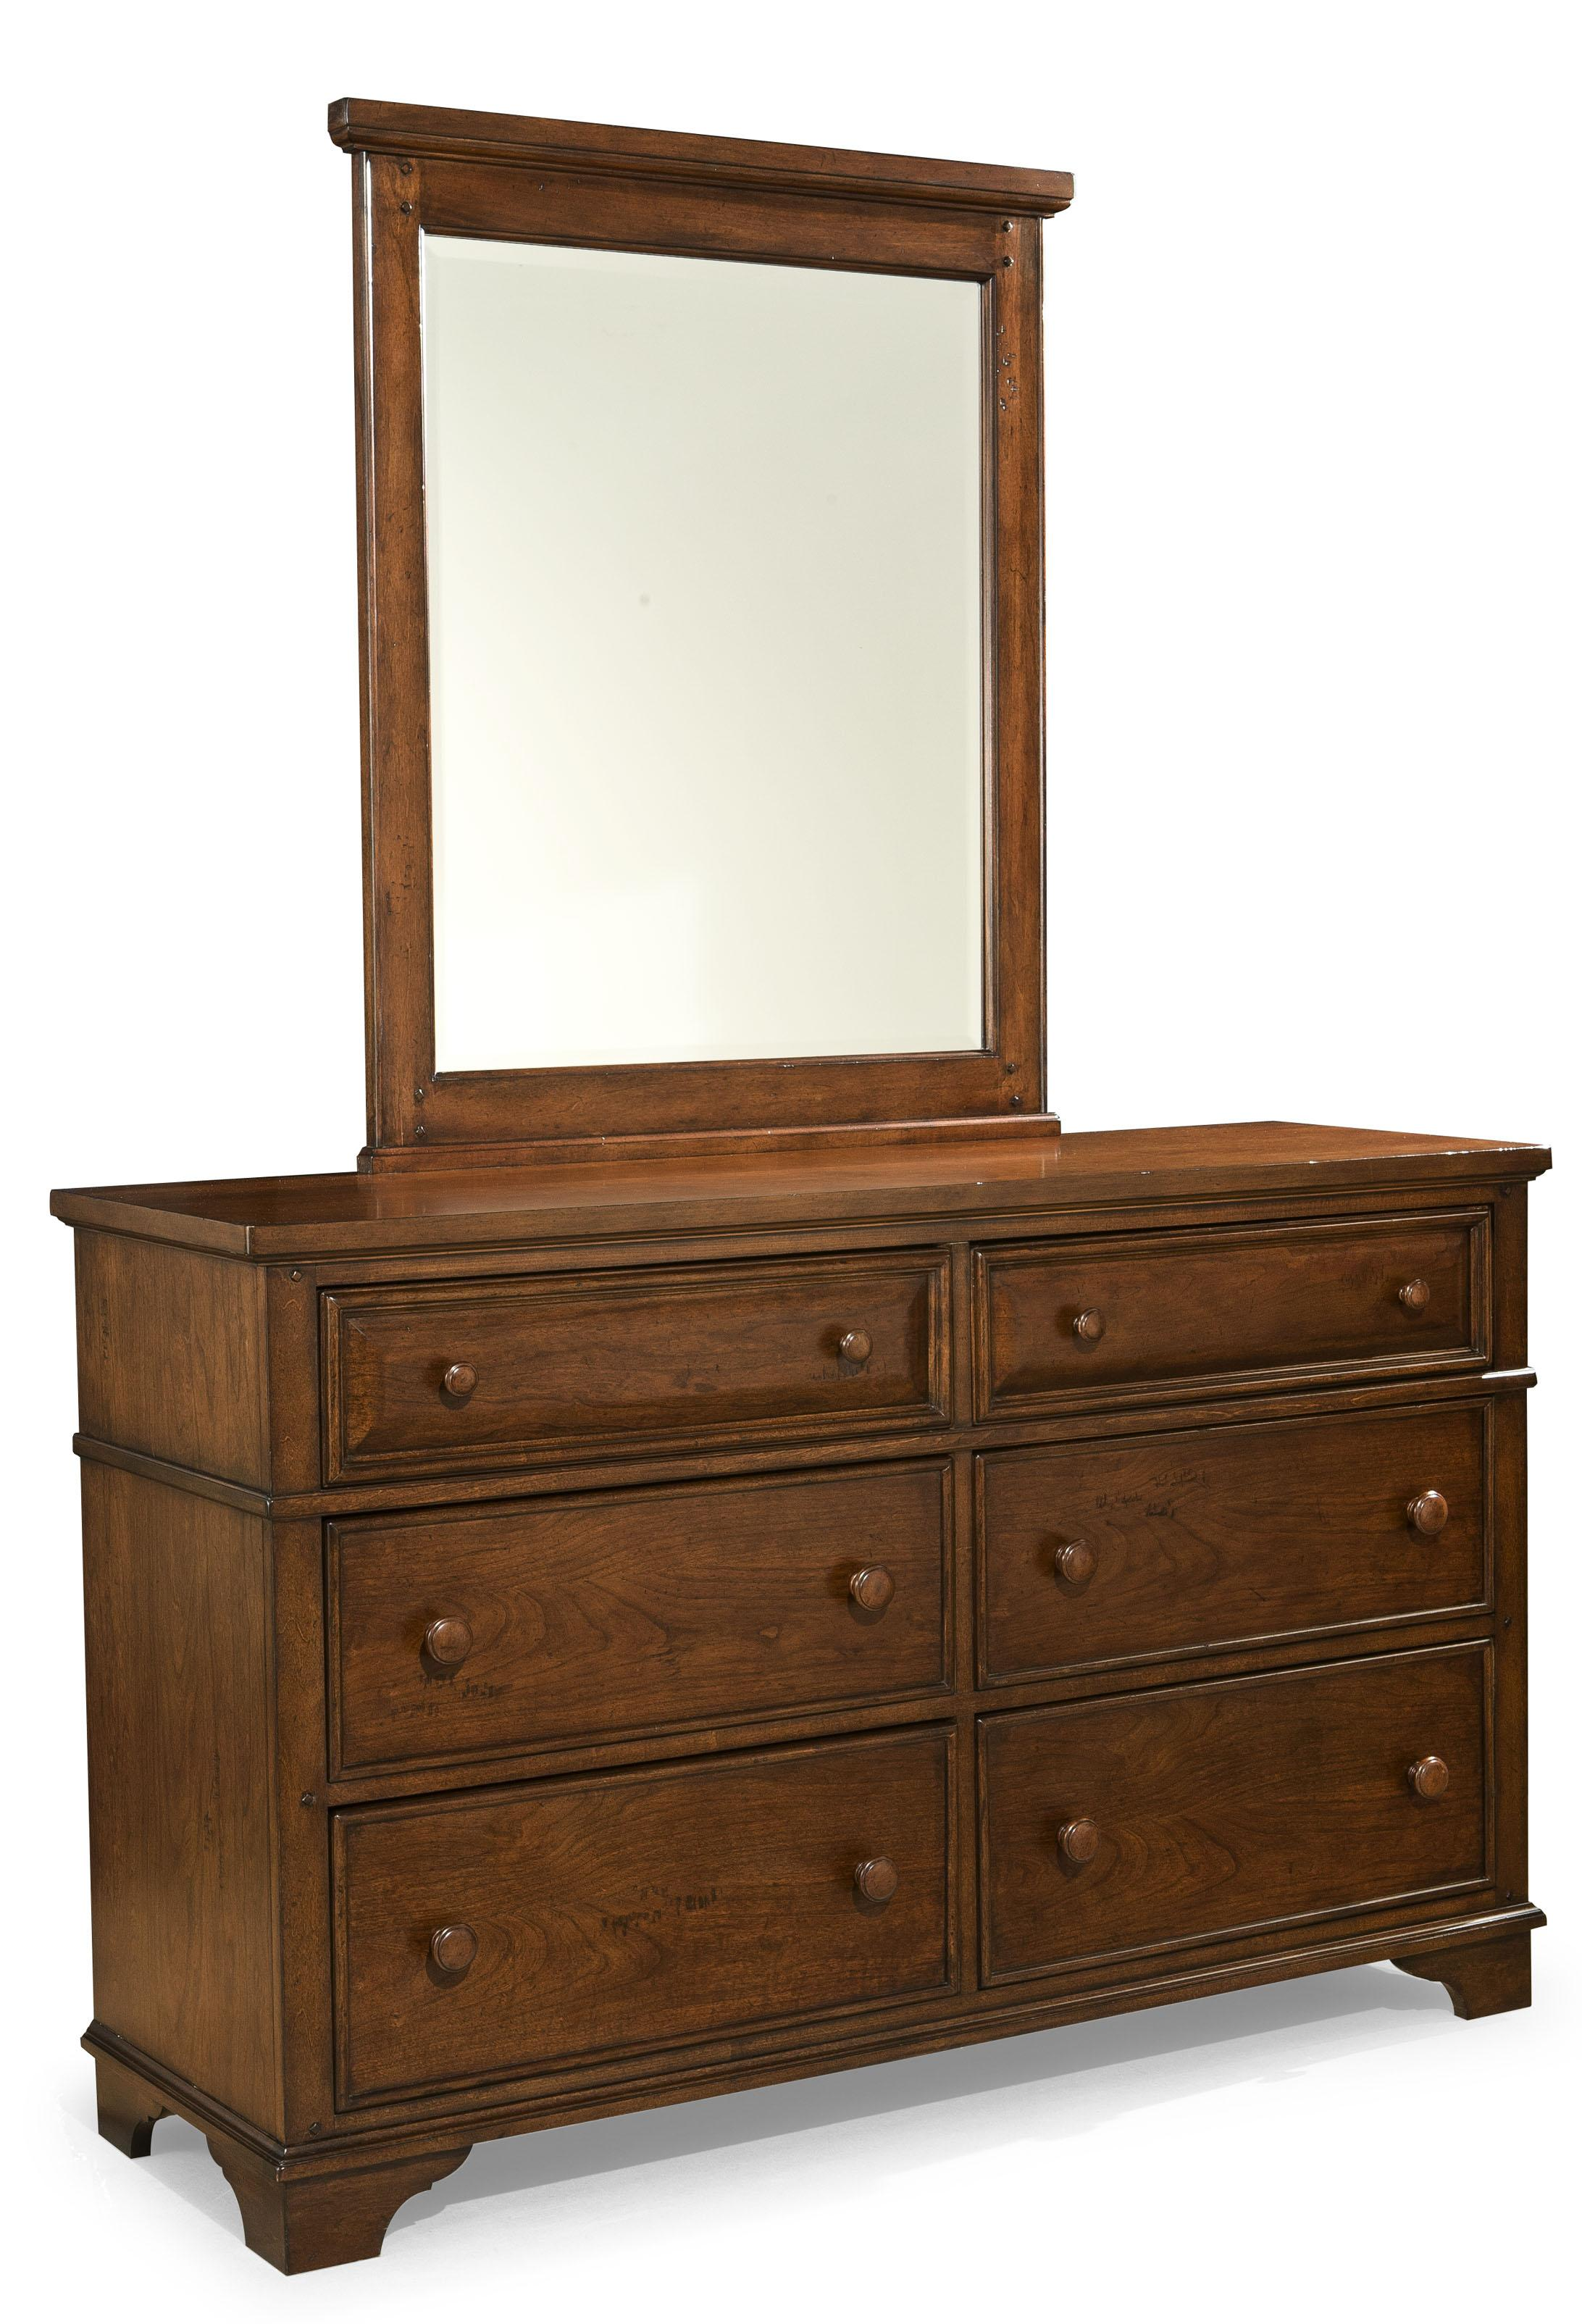 Legacy Classic Kids Dawsons Ridge Dresser and Mirror - Item Number: 2960-1100+0100